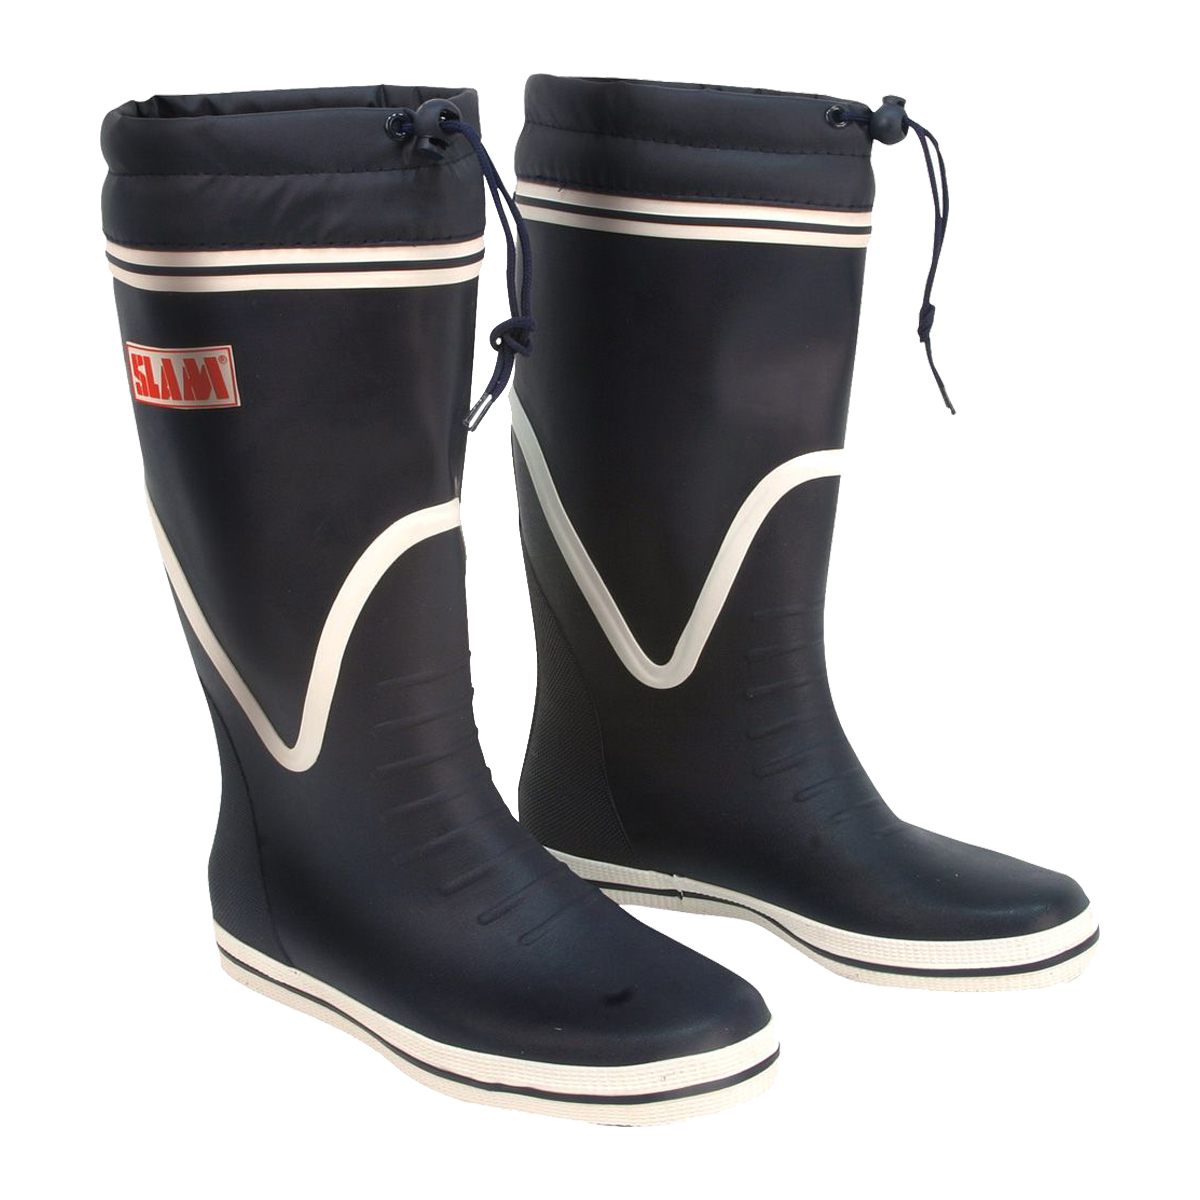 Yacht Uniform - Boots - Unisex Ocean Boot